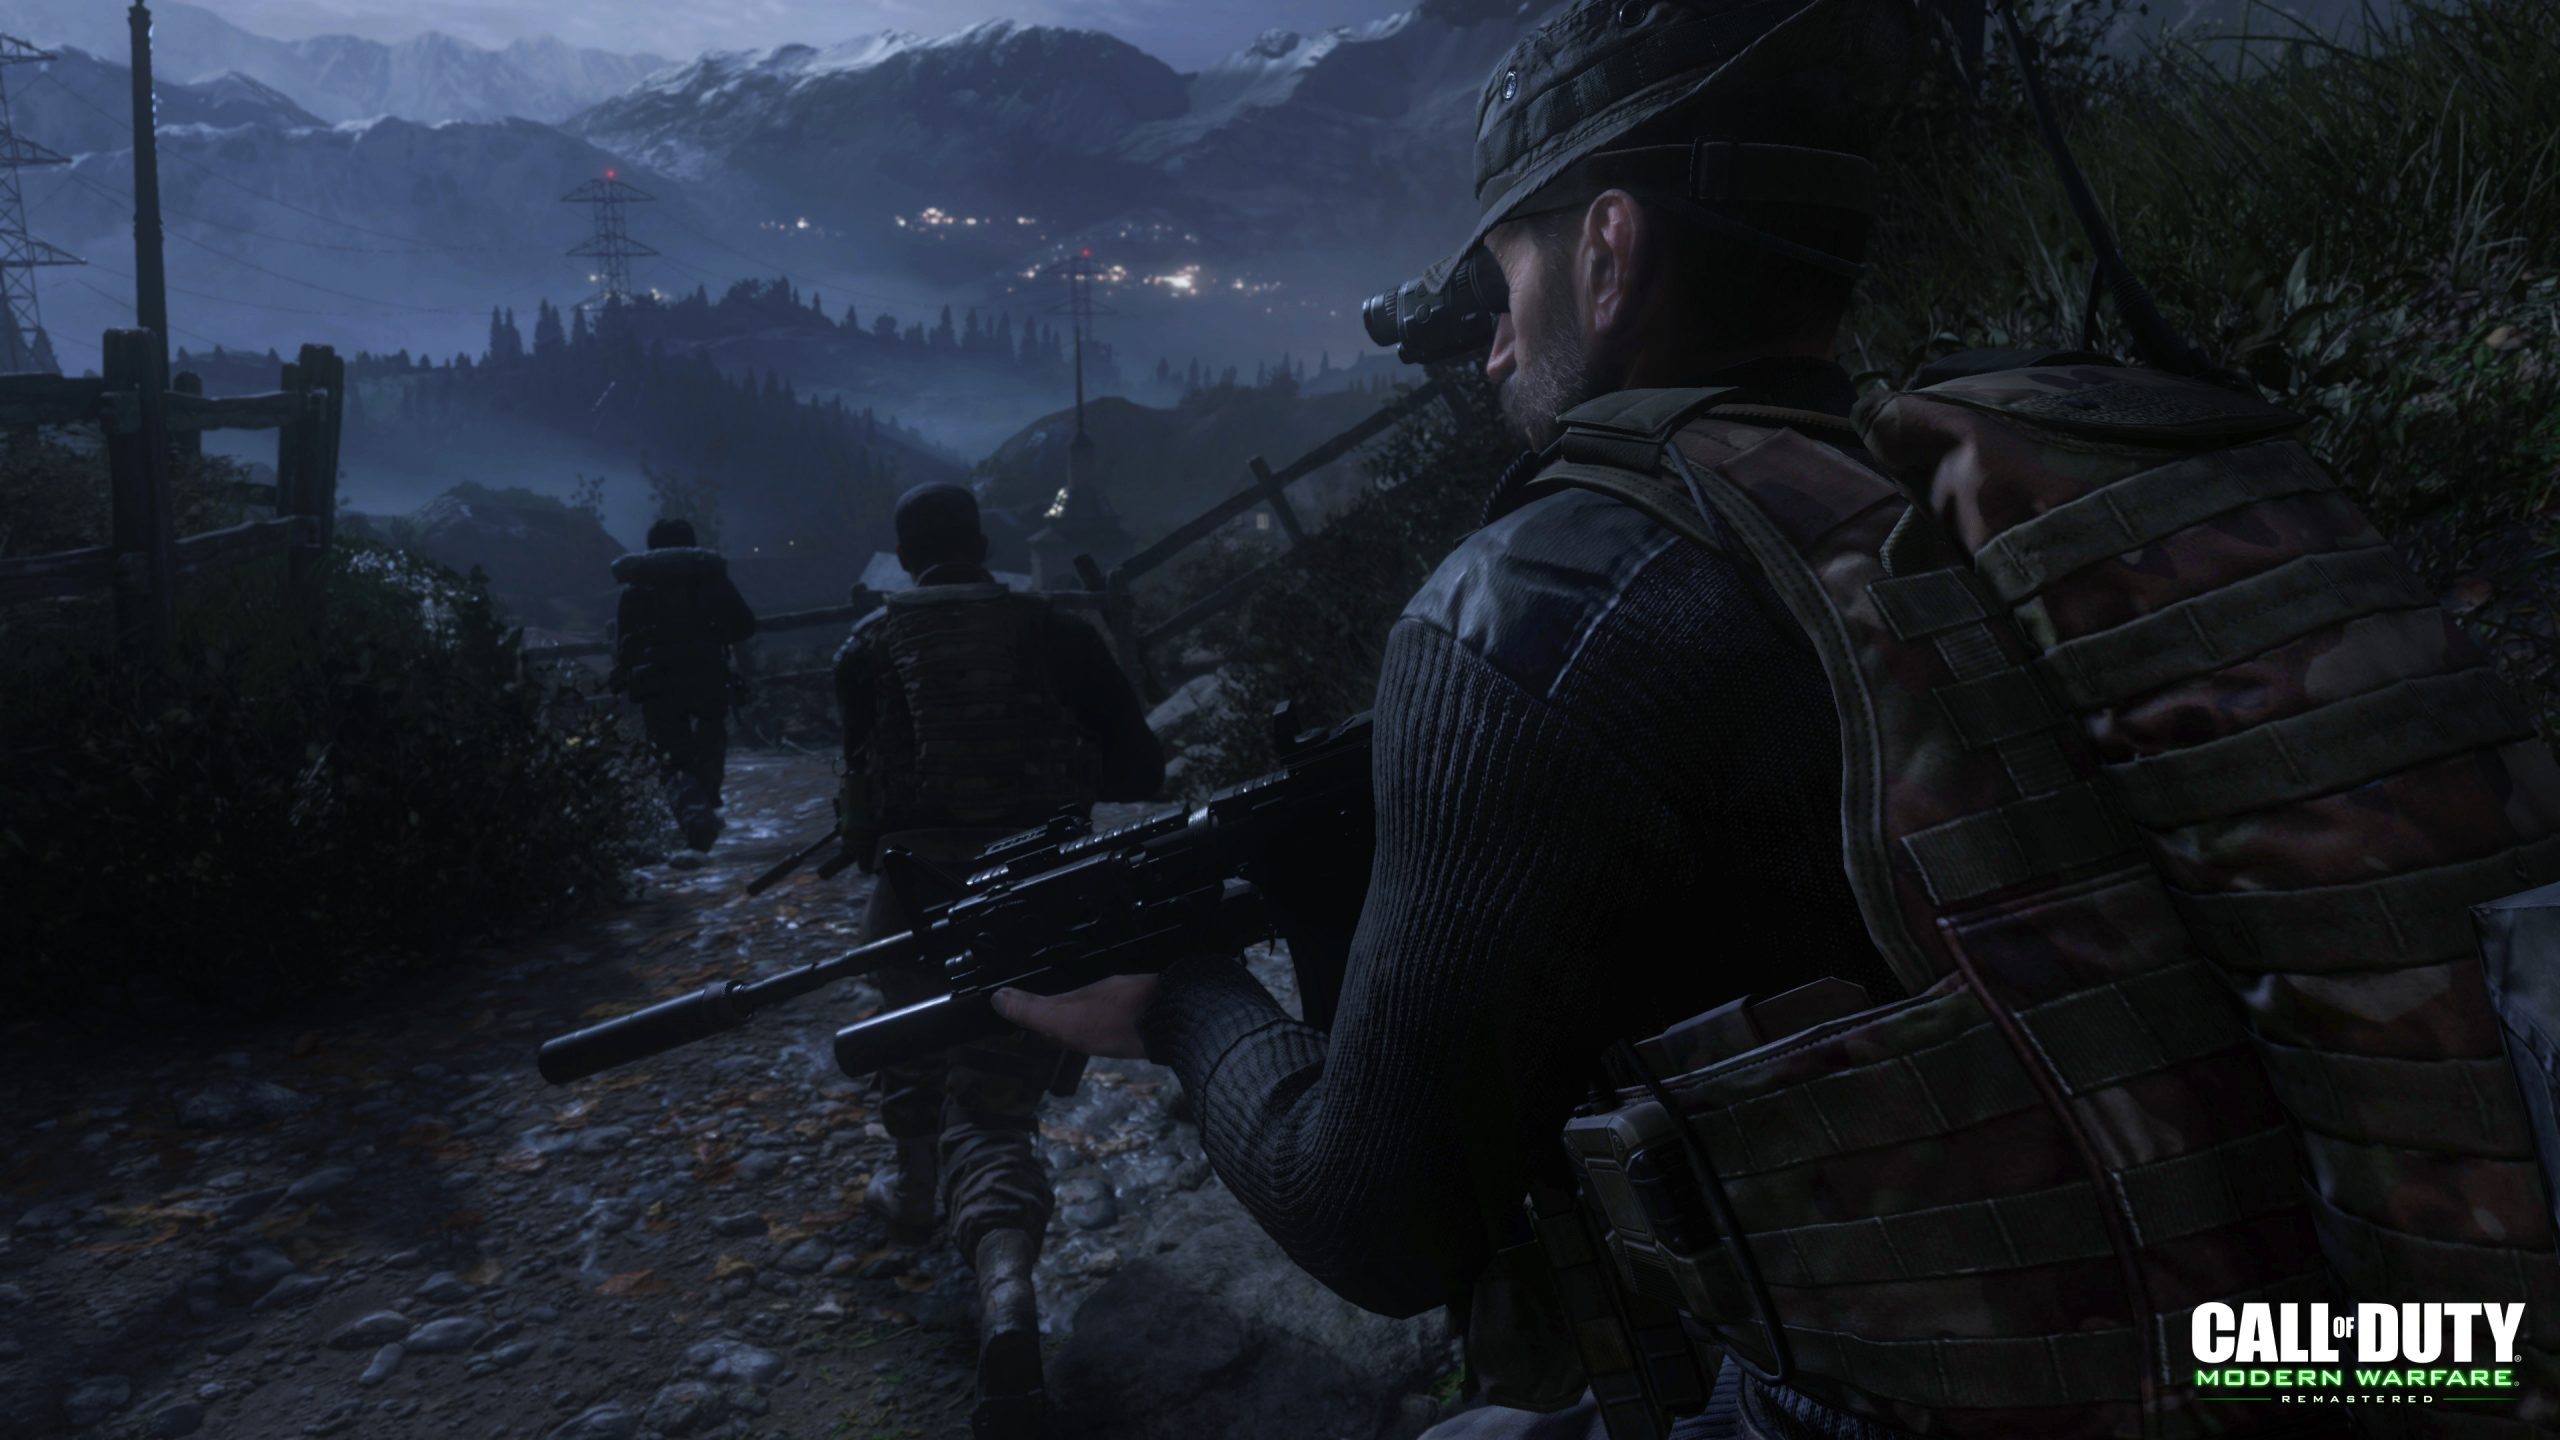 call_of_duty_modern_warfare_remastered_review_2